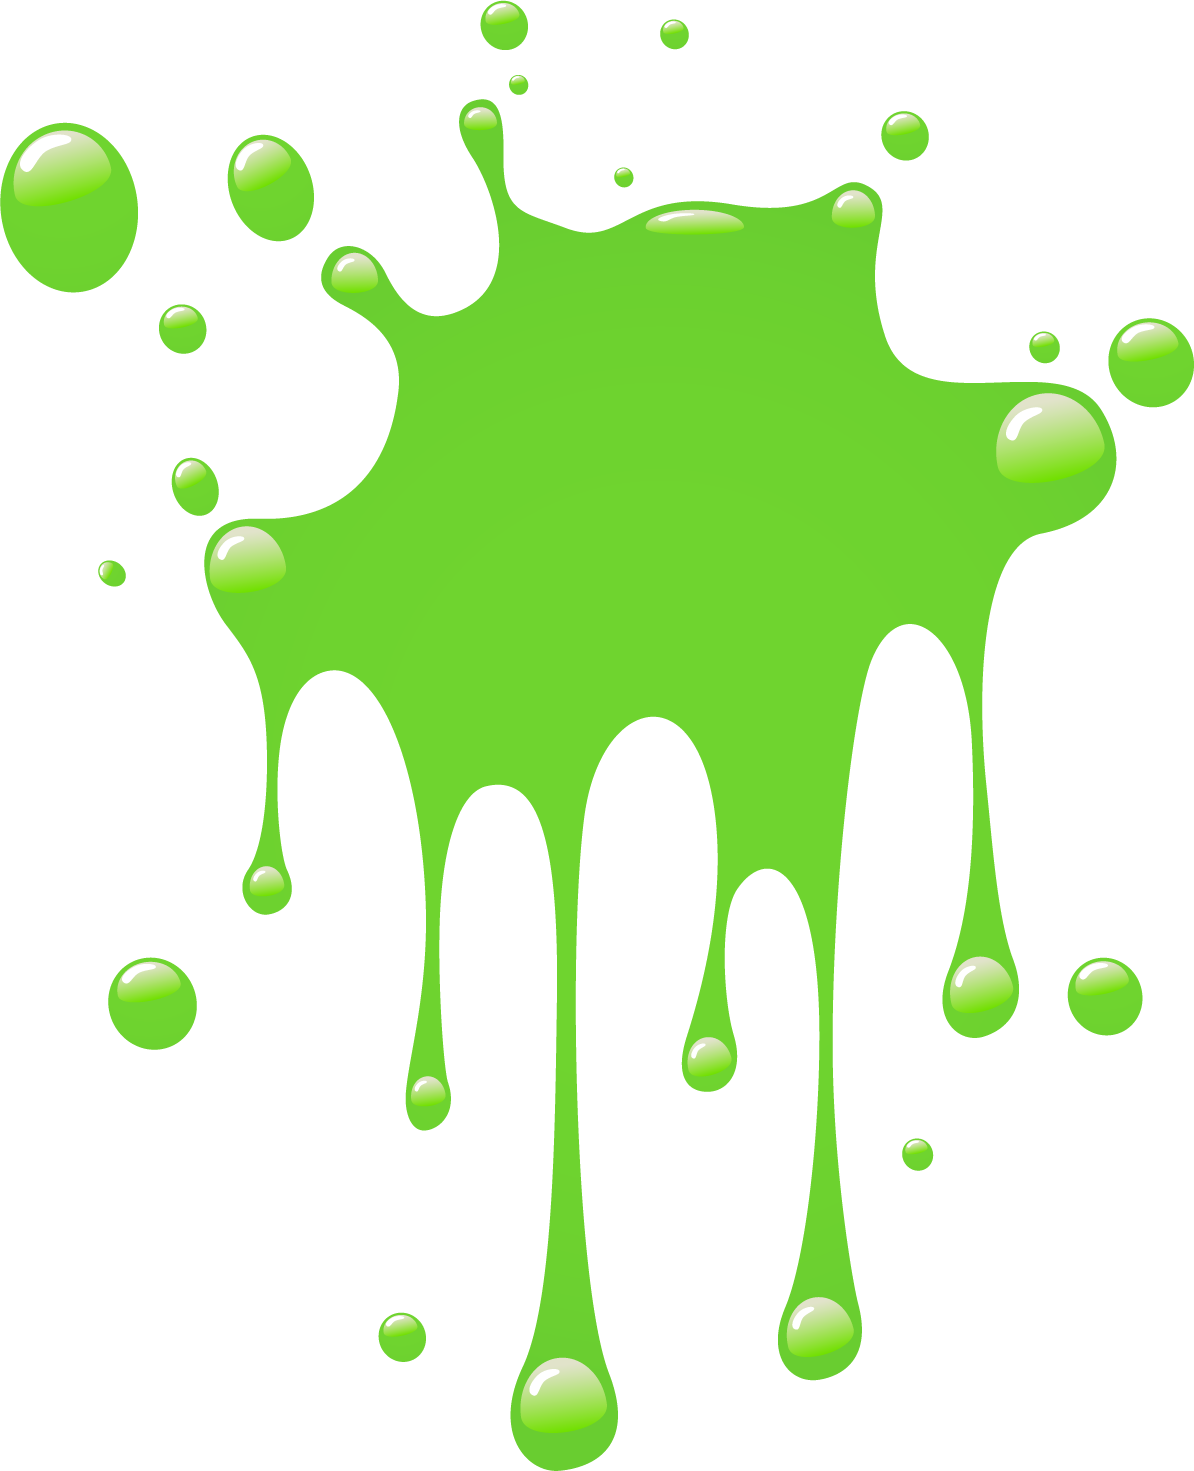 Slime background png. Transparent images all